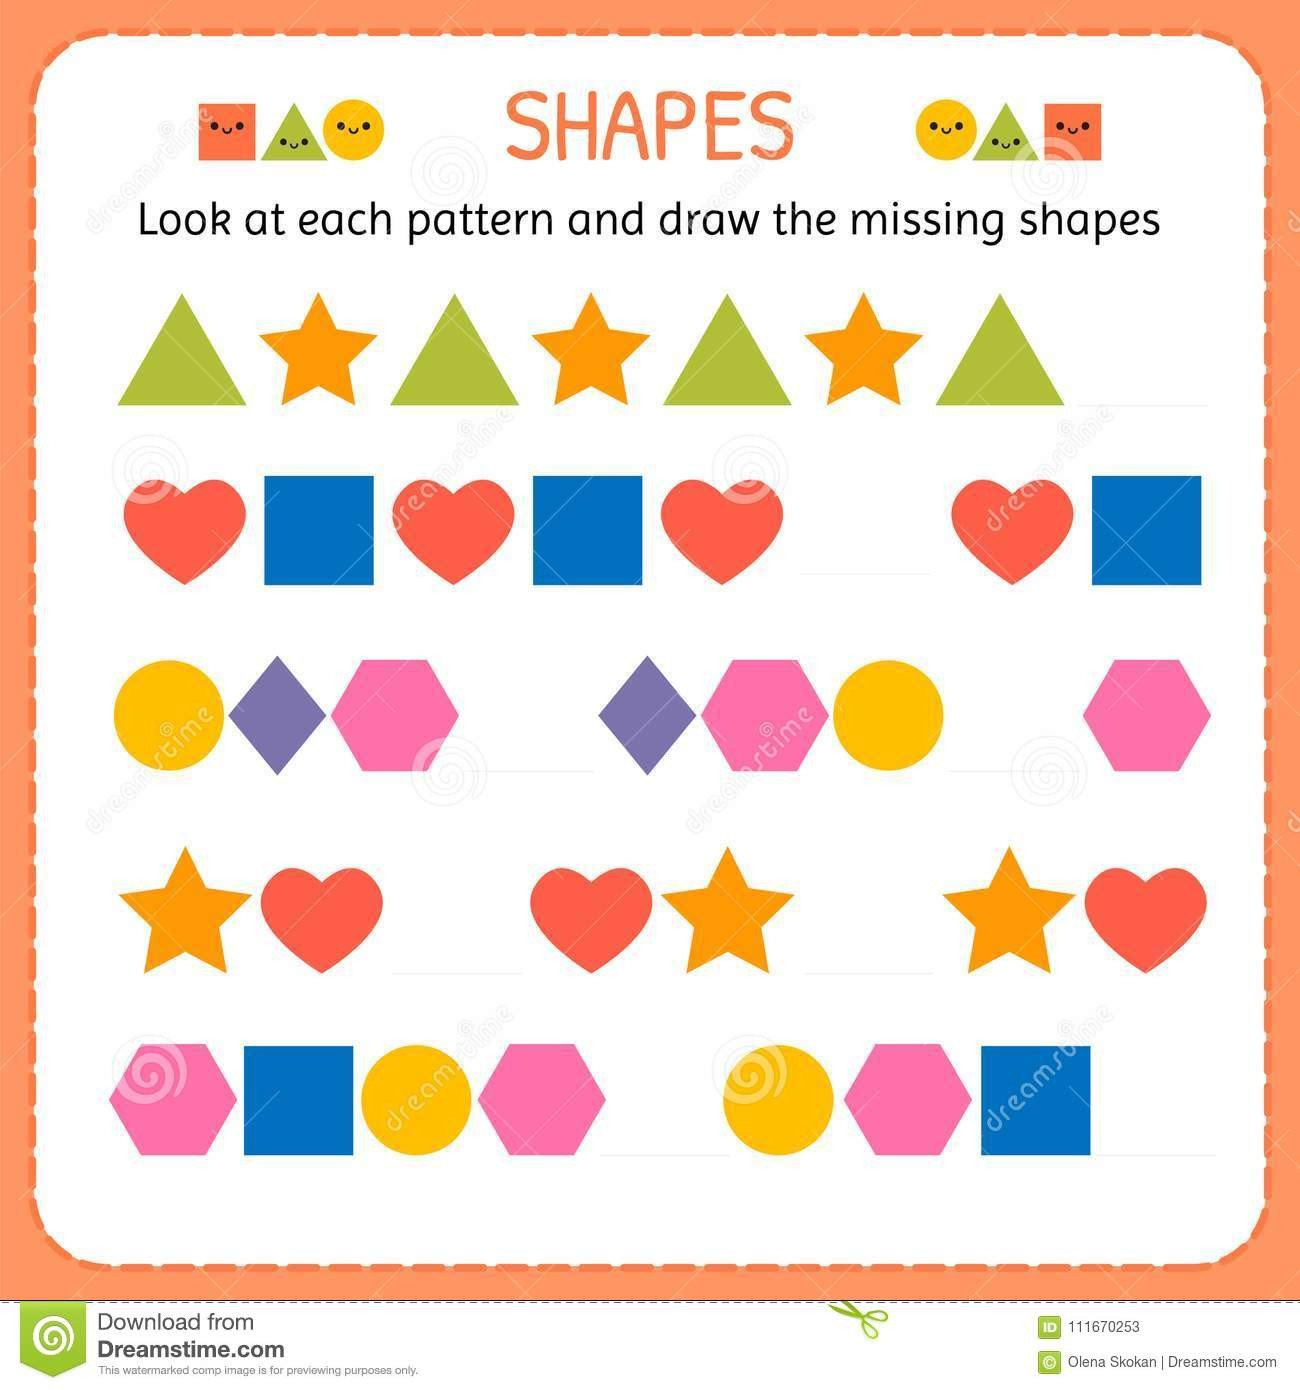 Geometric Shapes Patterns Worksheets Look at Each Pattern and Draw the Missing Shapes Learn